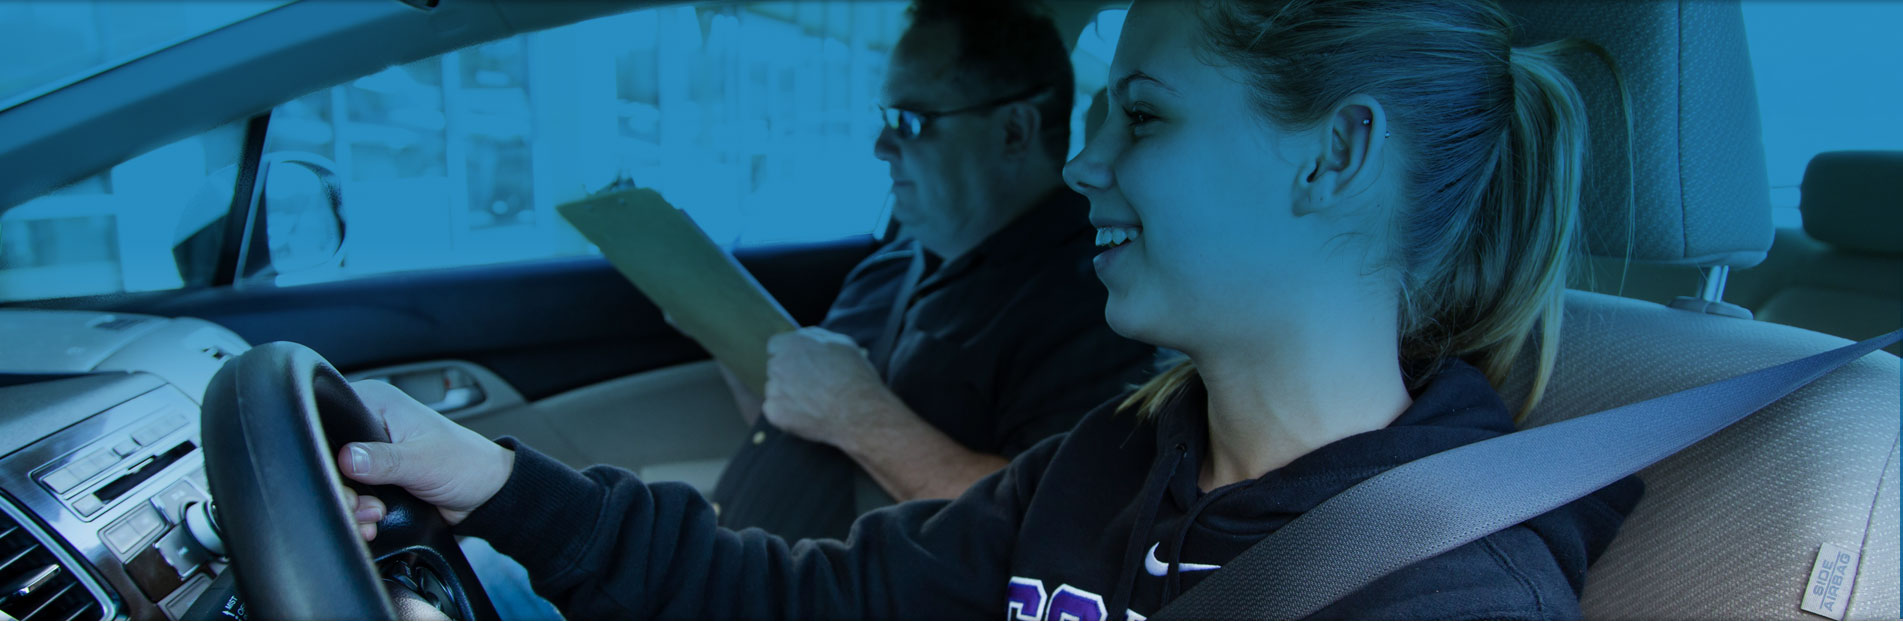 Denver Driving Schools and Driving Test with Tips for Drivers Ed